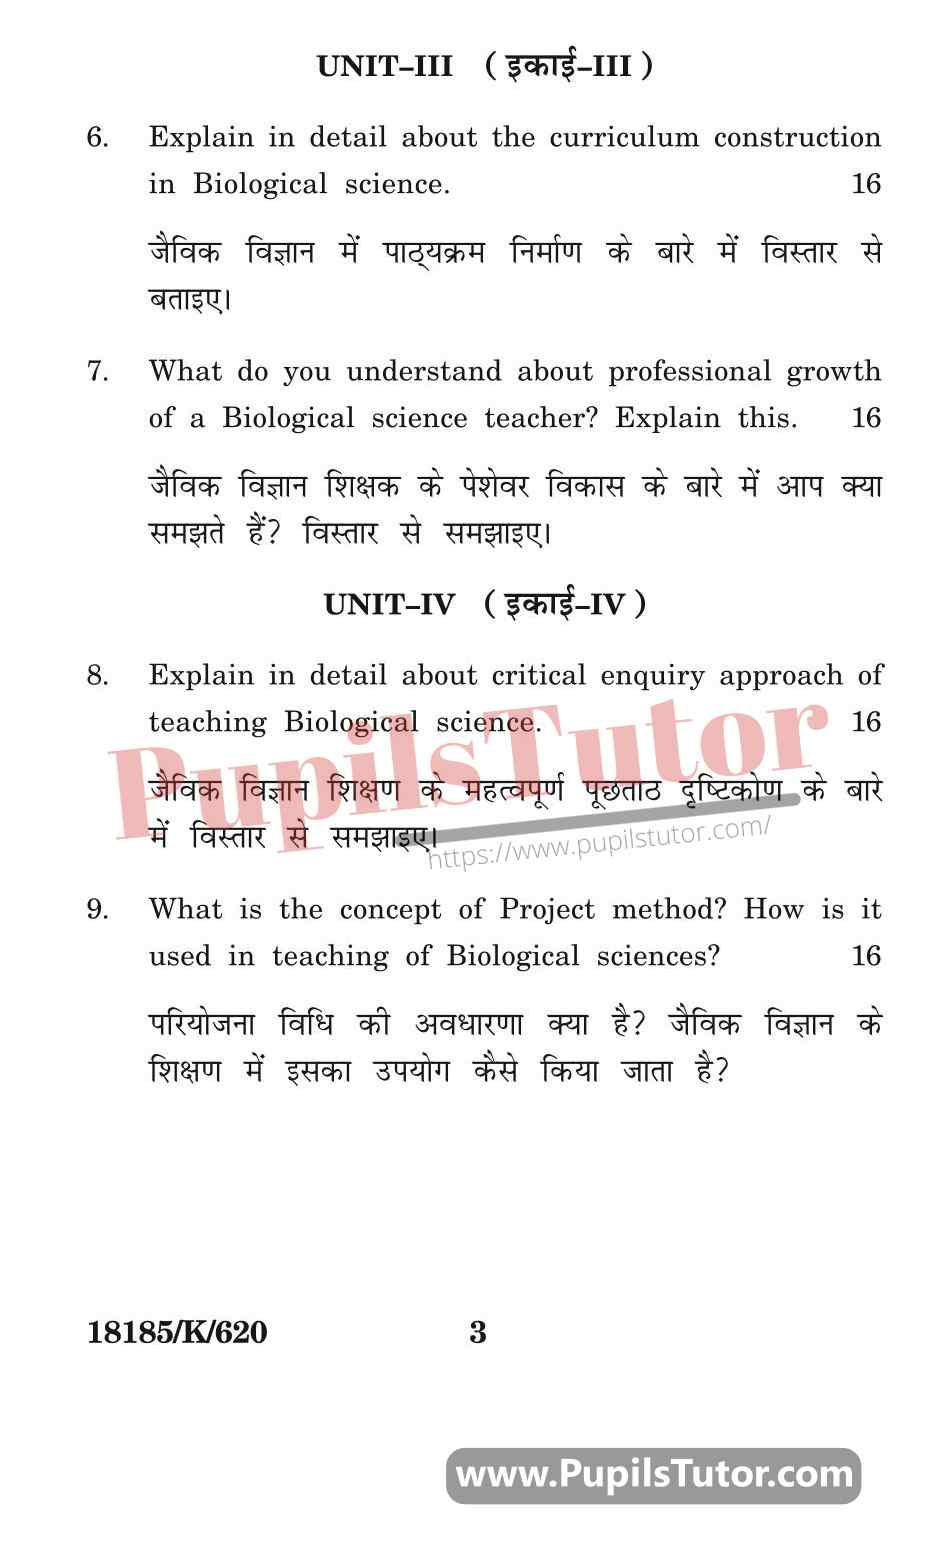 KUK (Kurukshetra University, Haryana) Pedagogy Of Biological Science Question Paper 2020 For B.Ed 1st And 2nd Year And All The 4 Semesters In English And Hindi Medium Free Download PDF - Page 3 - pupilstutor